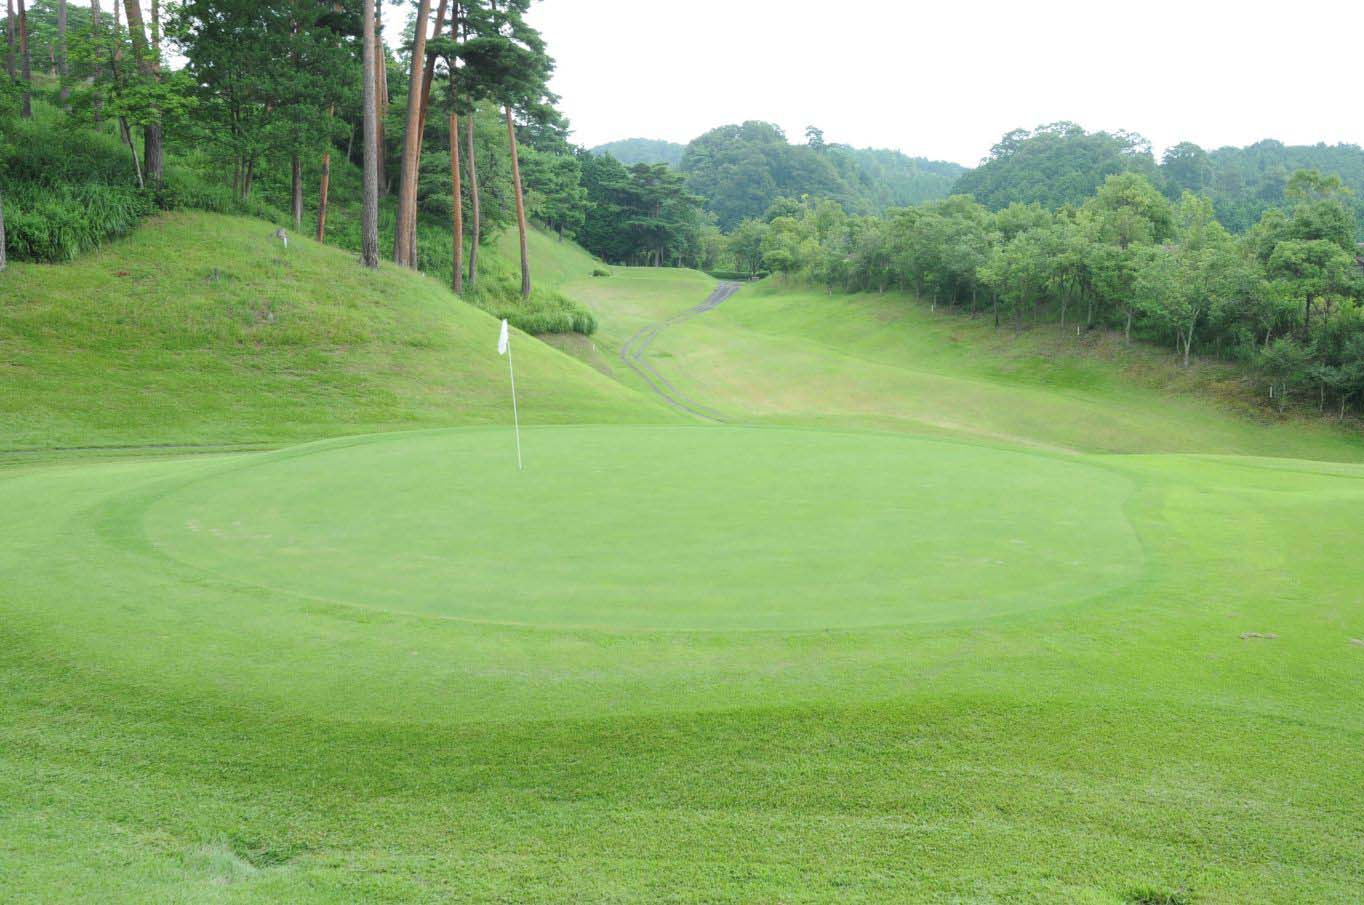 approach Kikyougaoka Golf Course